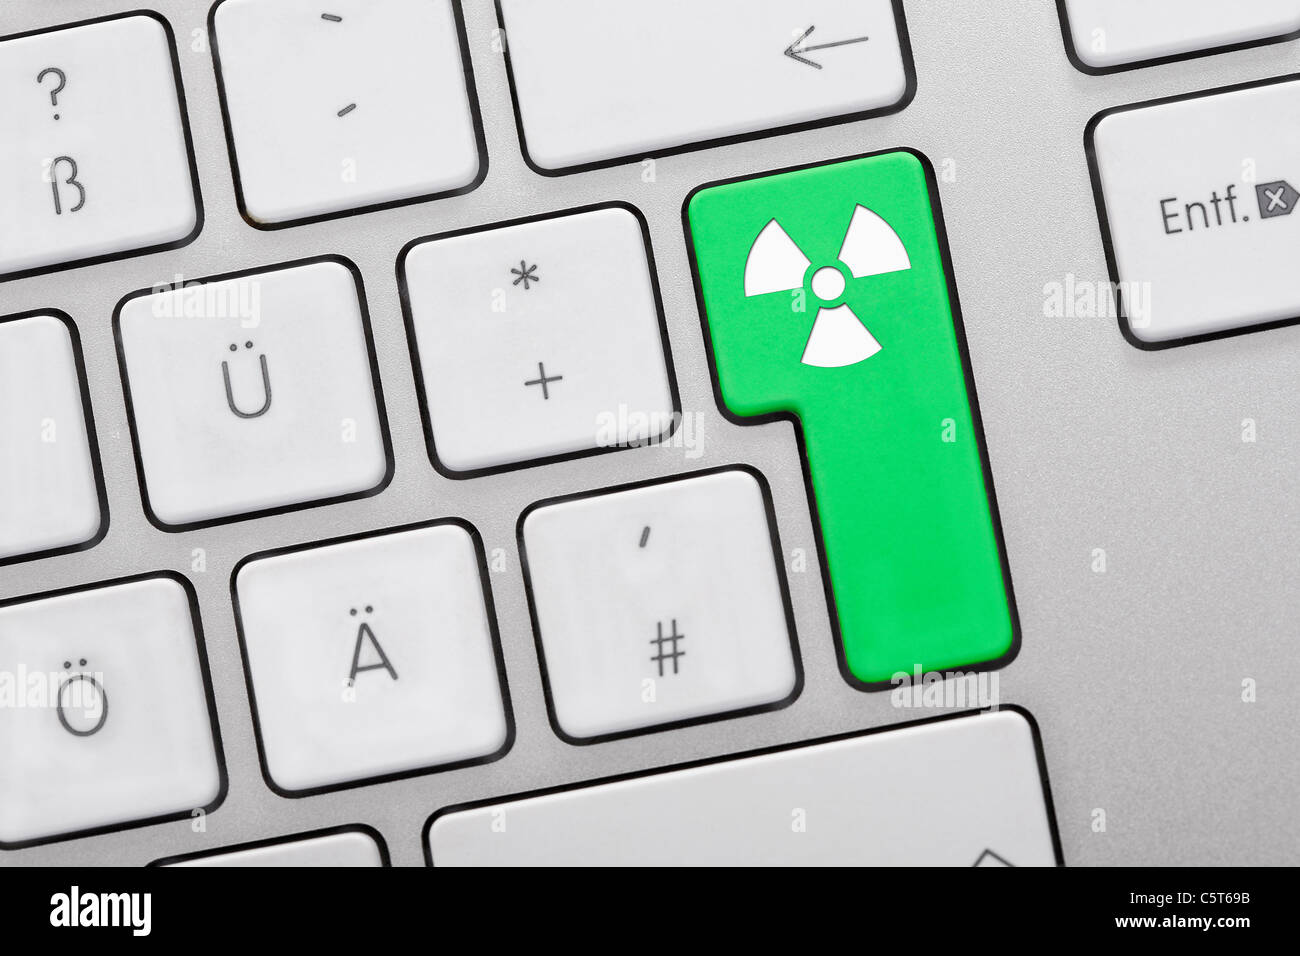 Close up of computer keys with atom symbol on green key Stock Photo